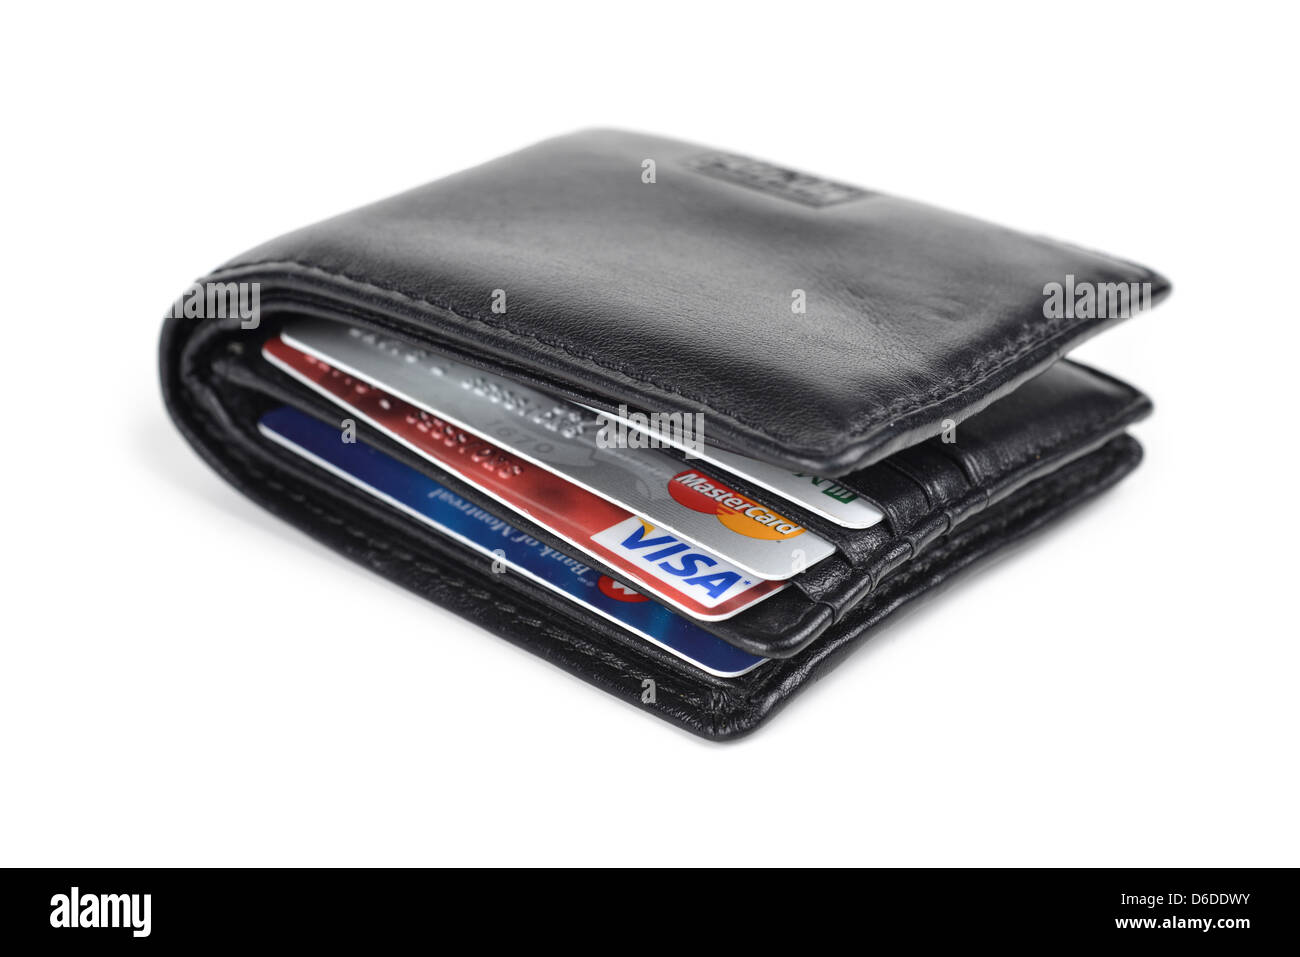 Wallet with Credit Cards - Stock Image